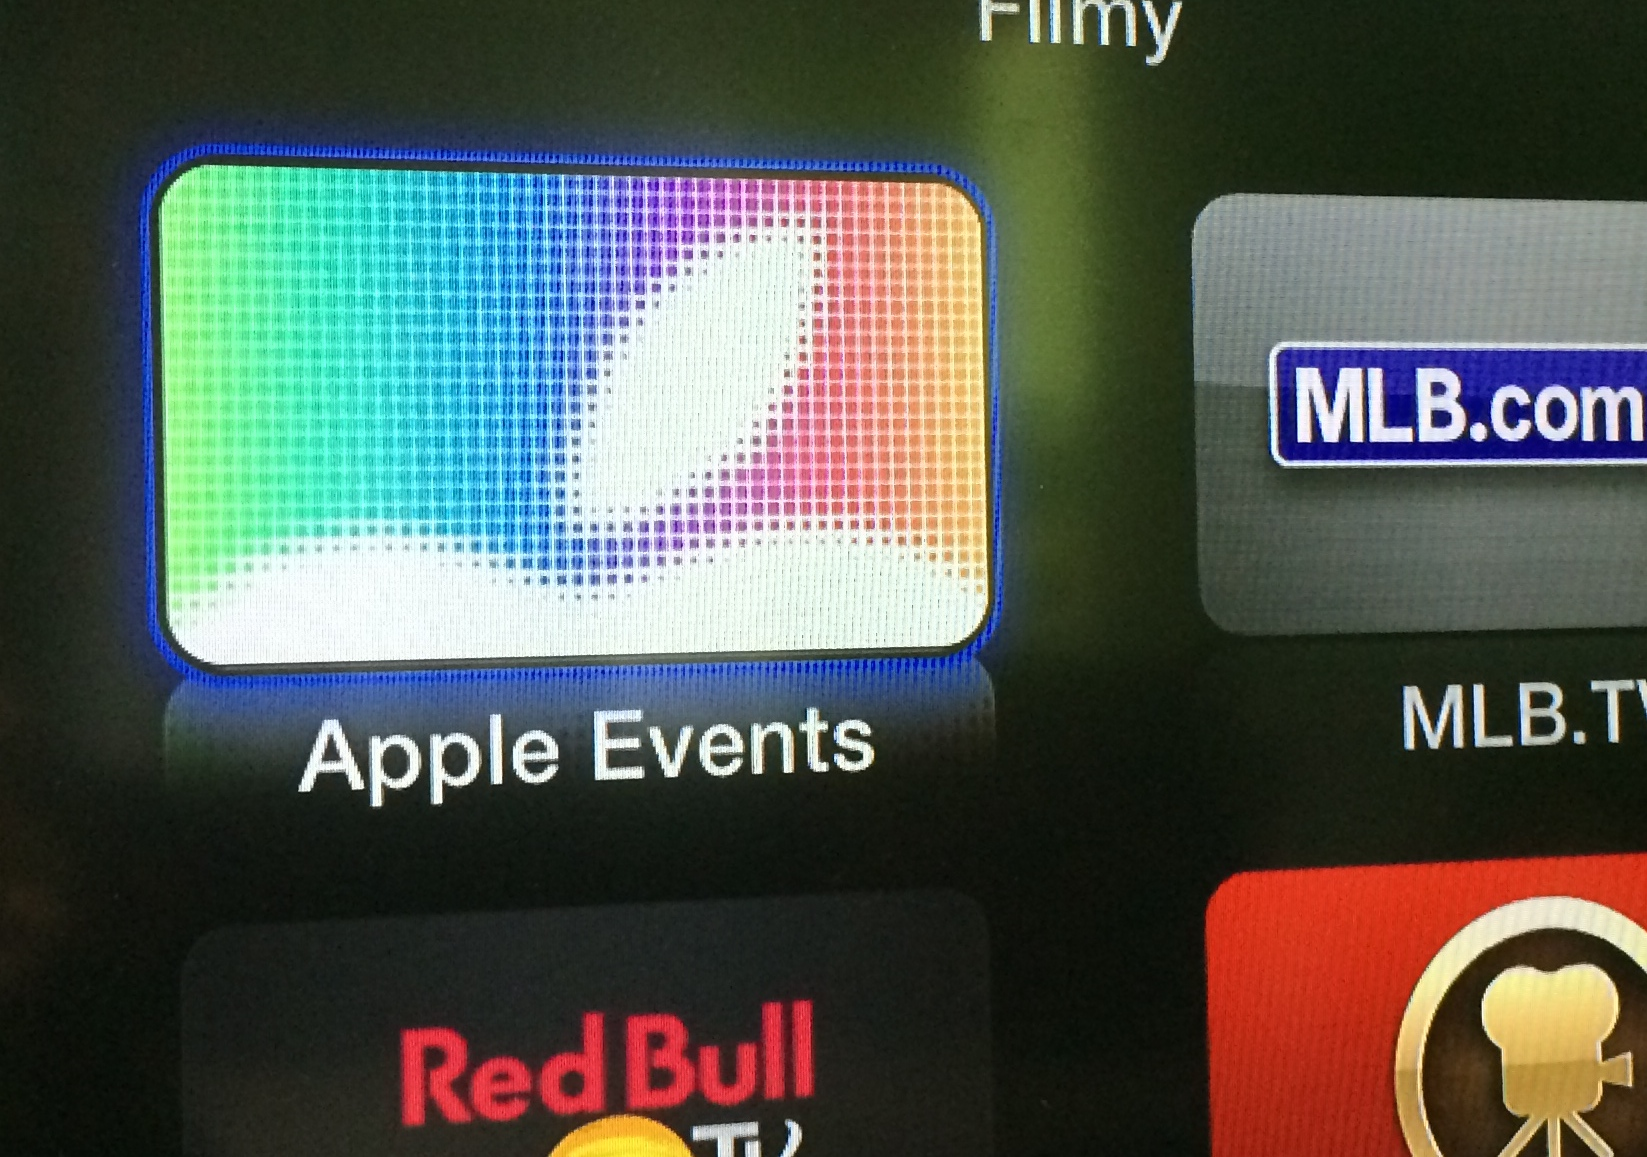 Apple Events na Apple TV